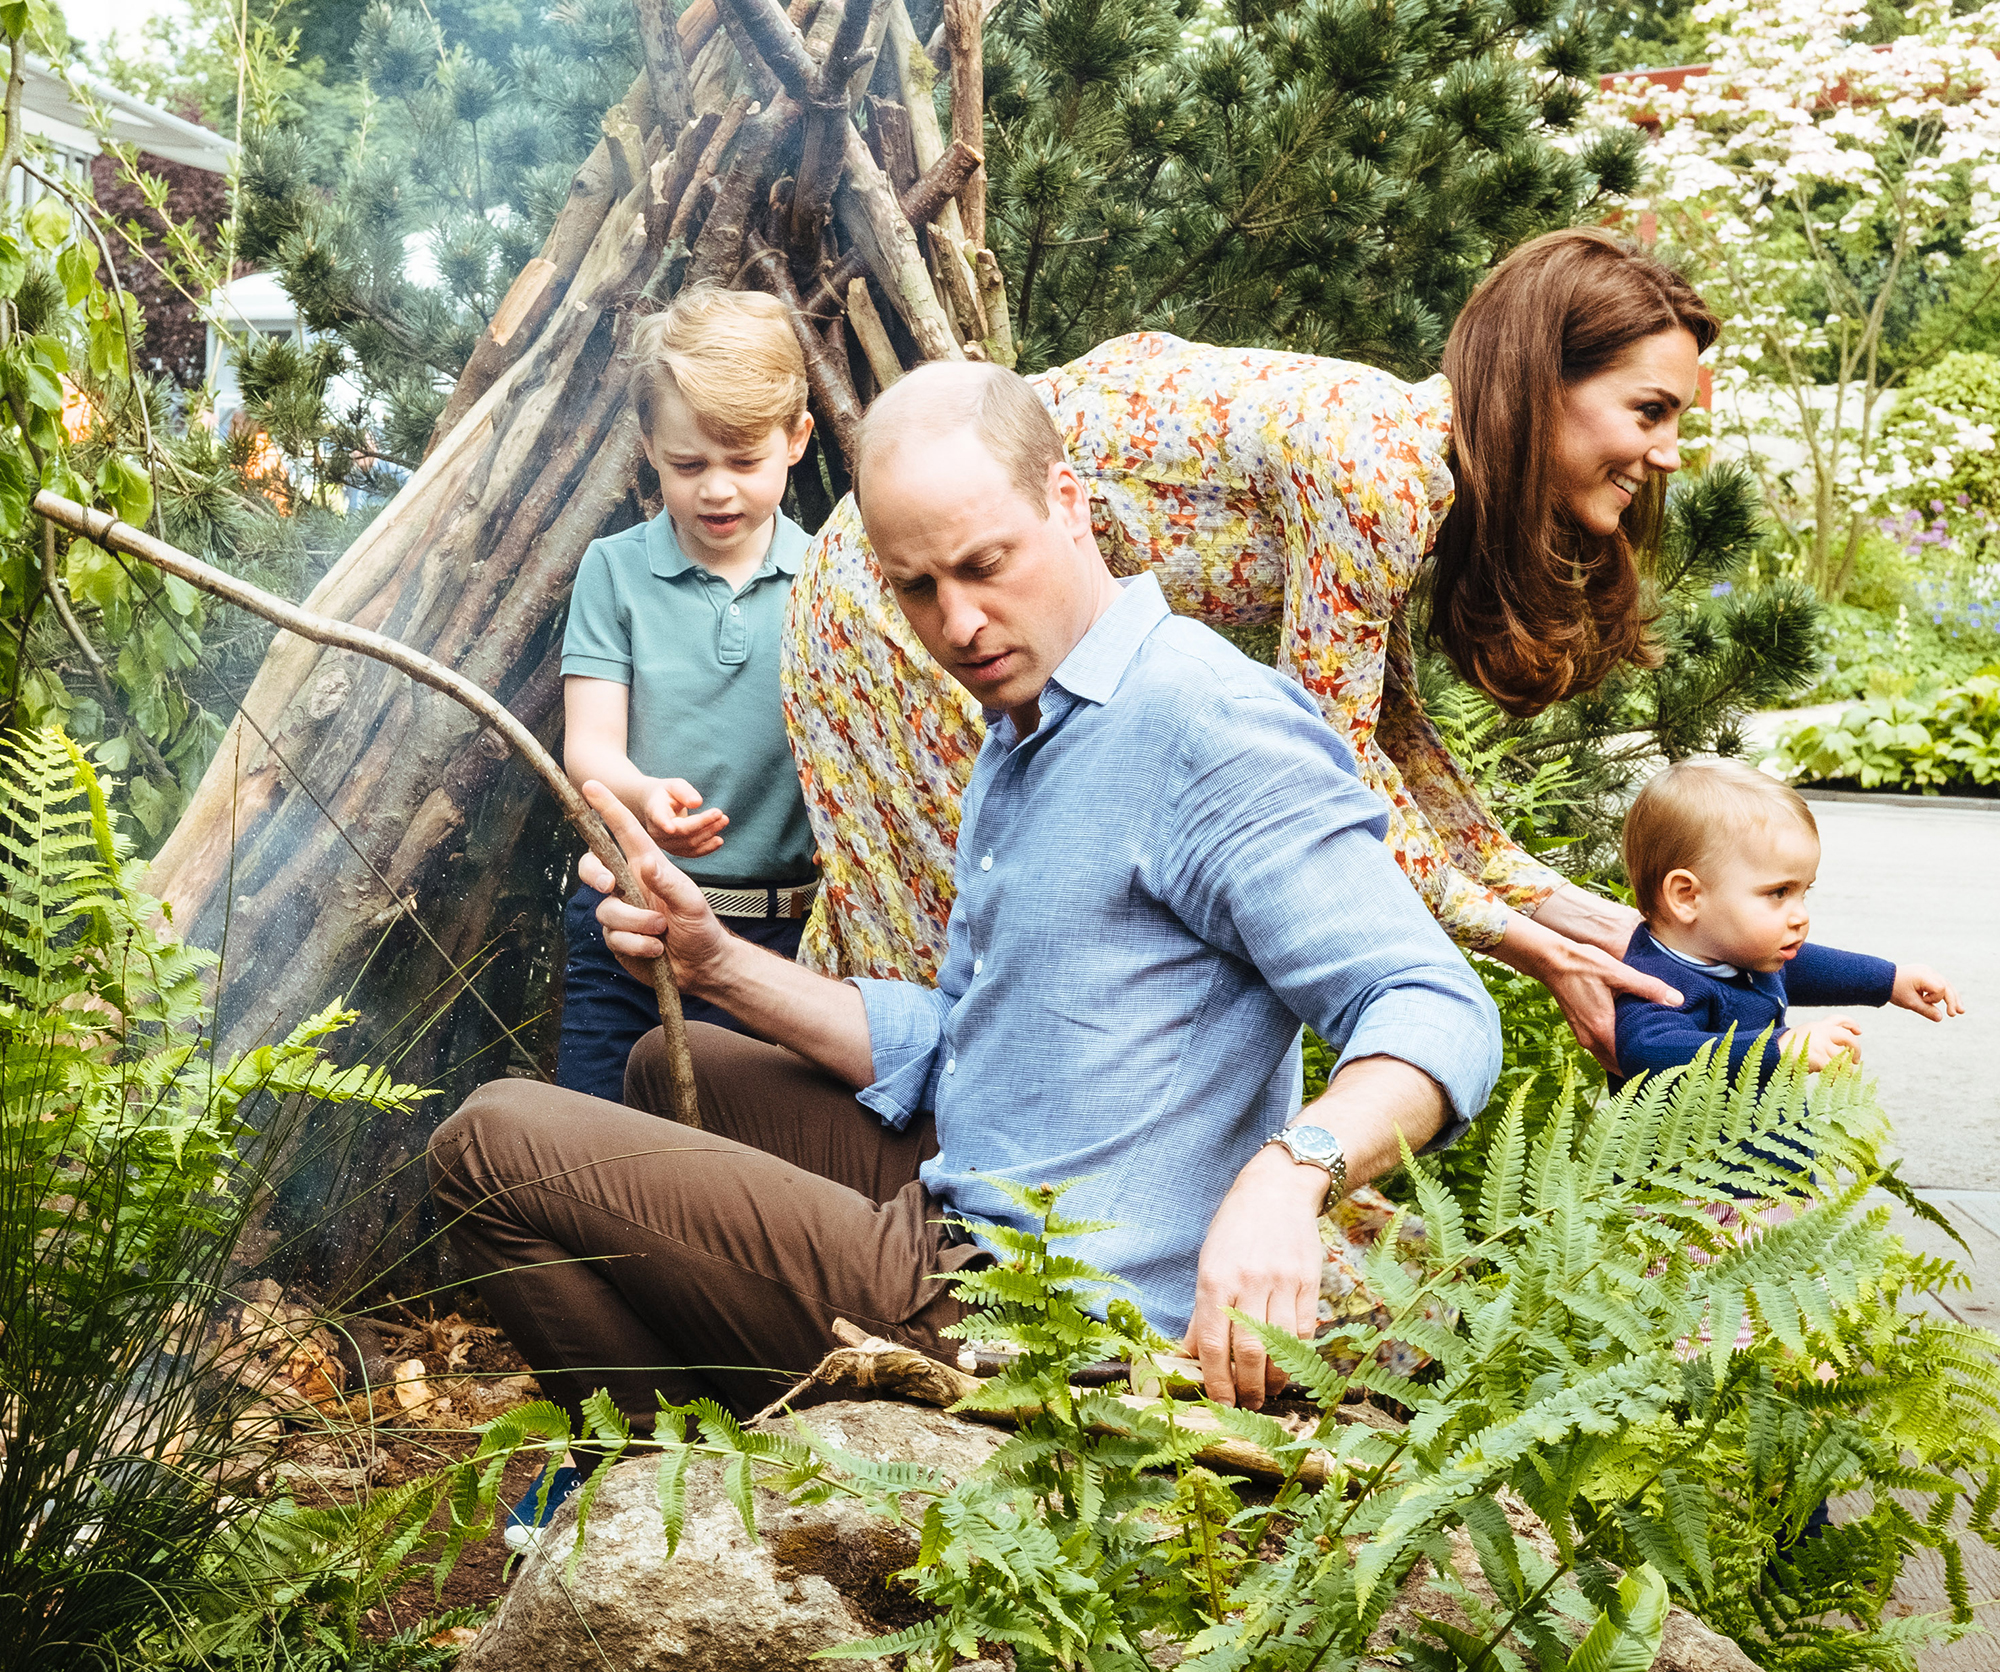 Prince-George-endorsed-the-garden-Duchess-Kate